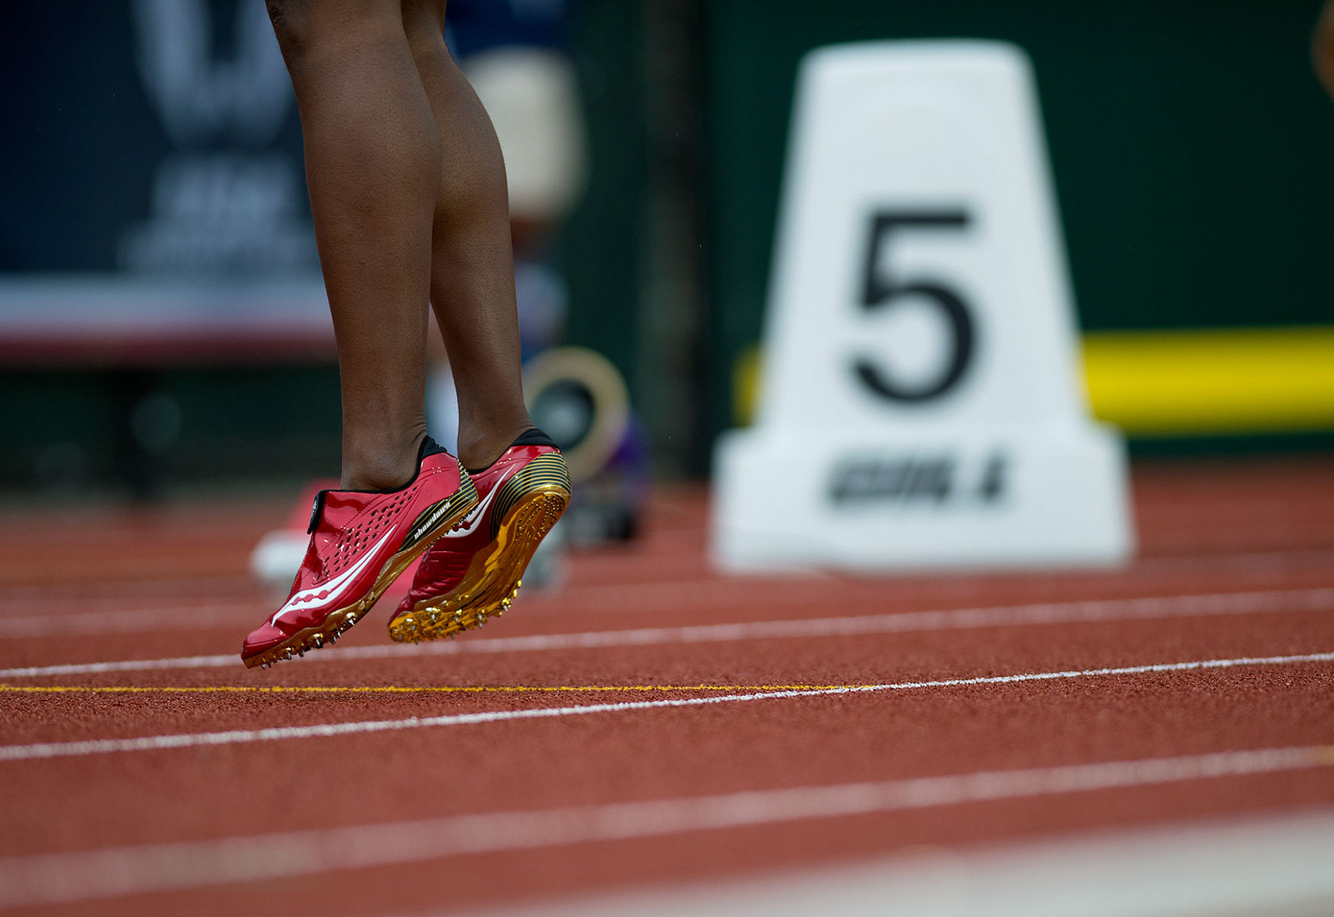 1ustrials2012_redshoesjump_track_and_field_image_jeff_cohen_photo_lb.jpg